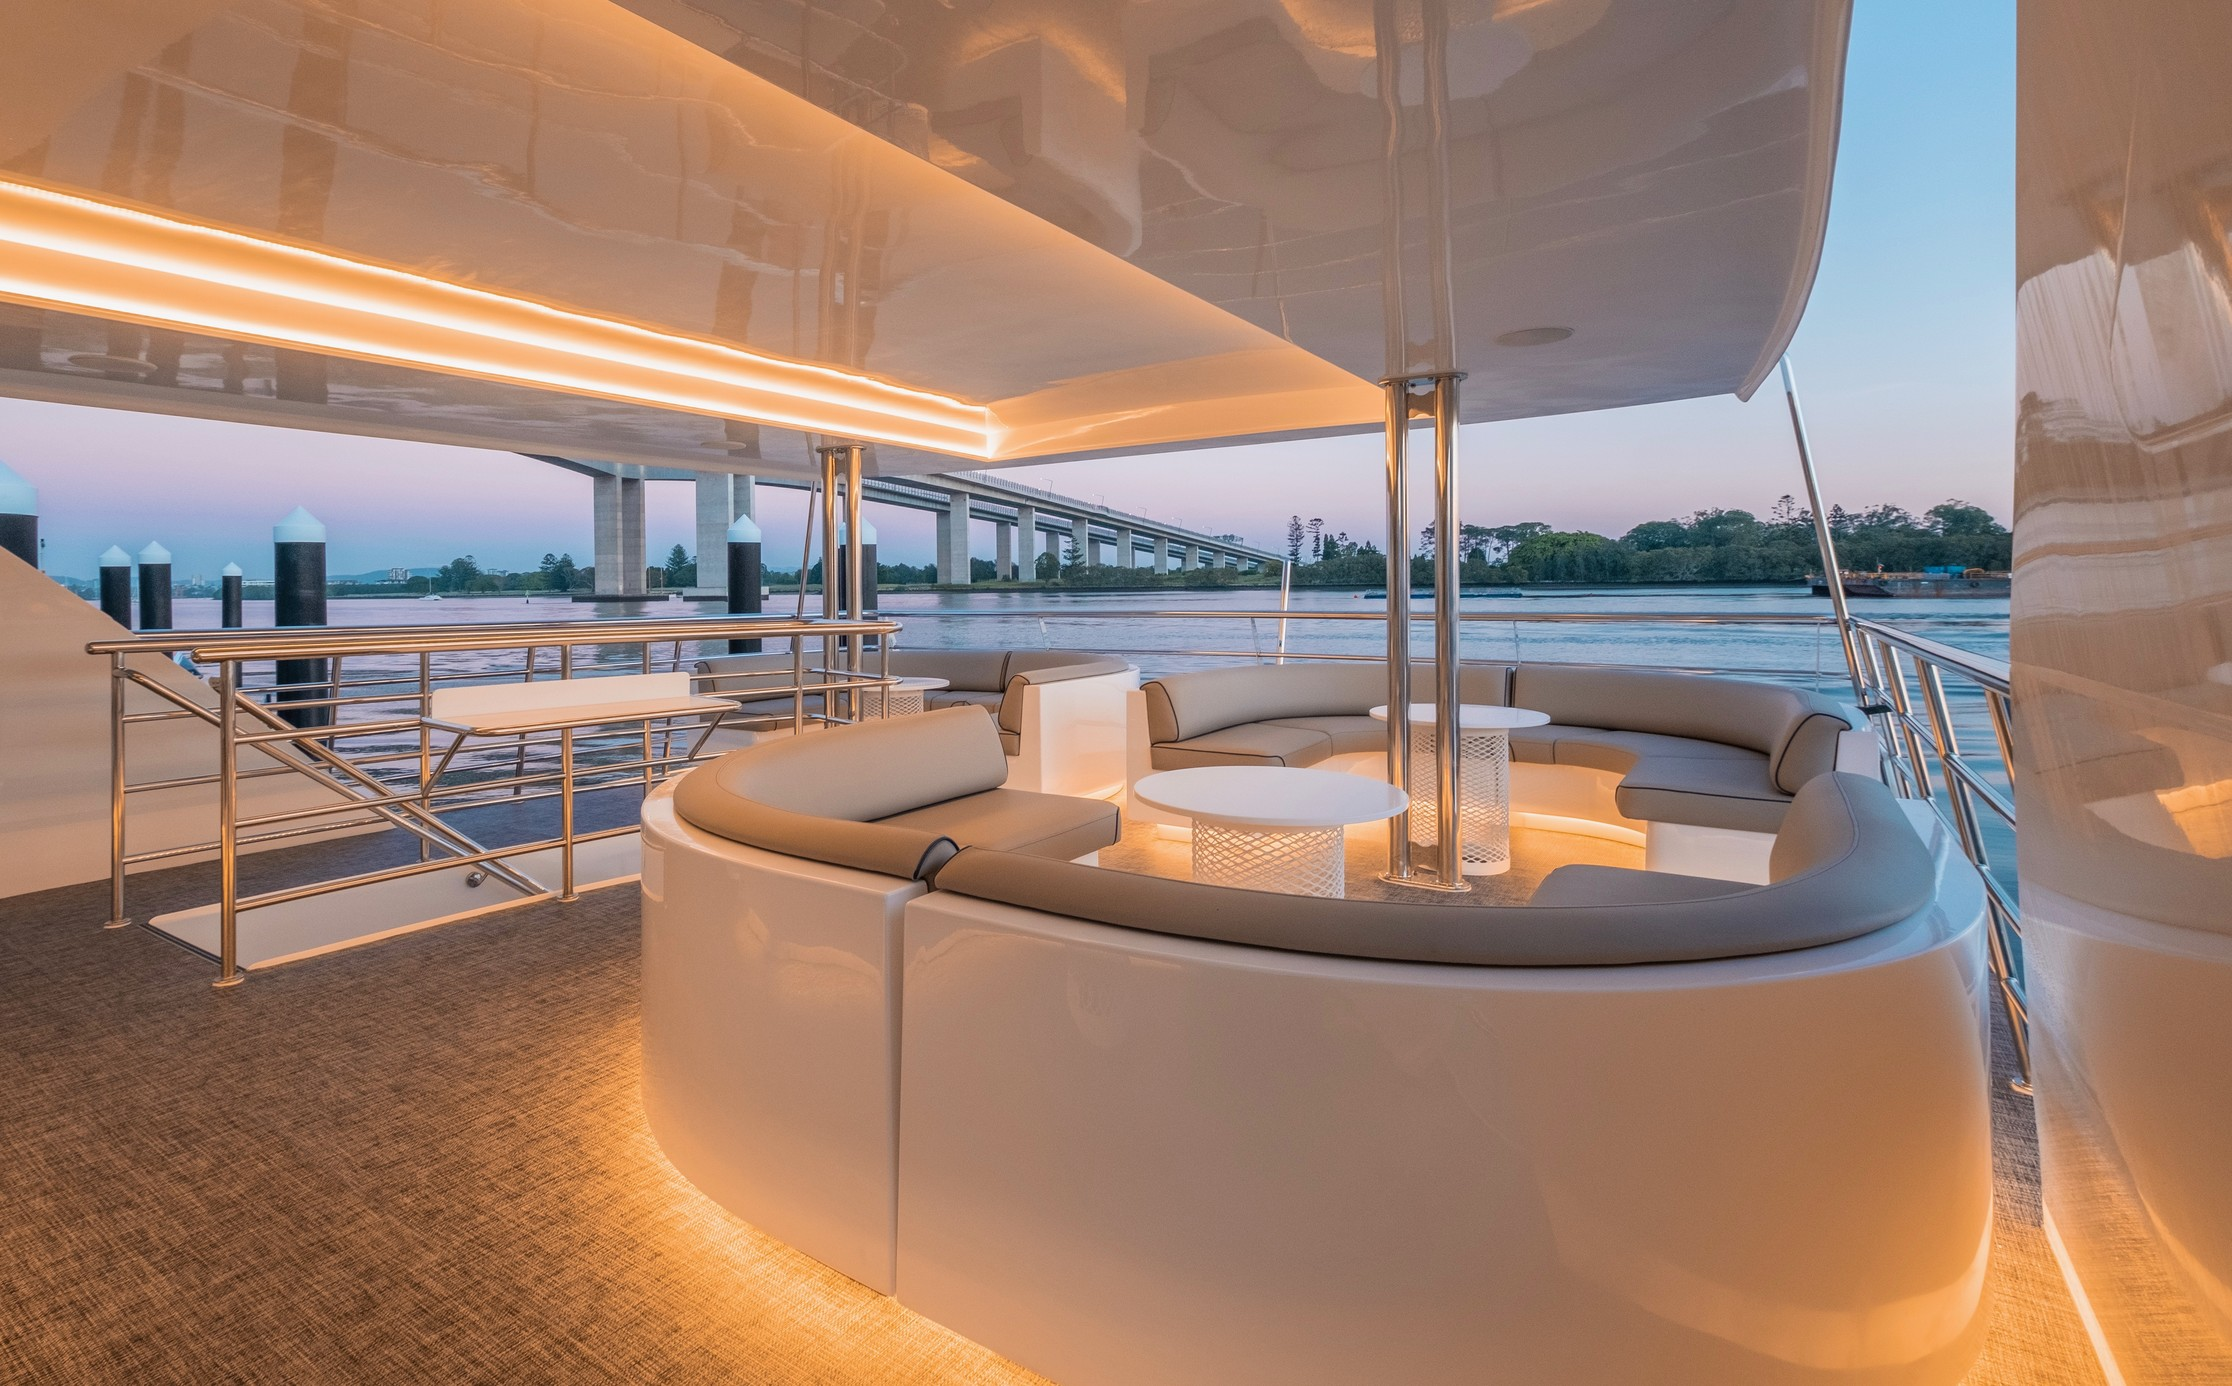 luxury boat interior with lighting under the seats with view of the river